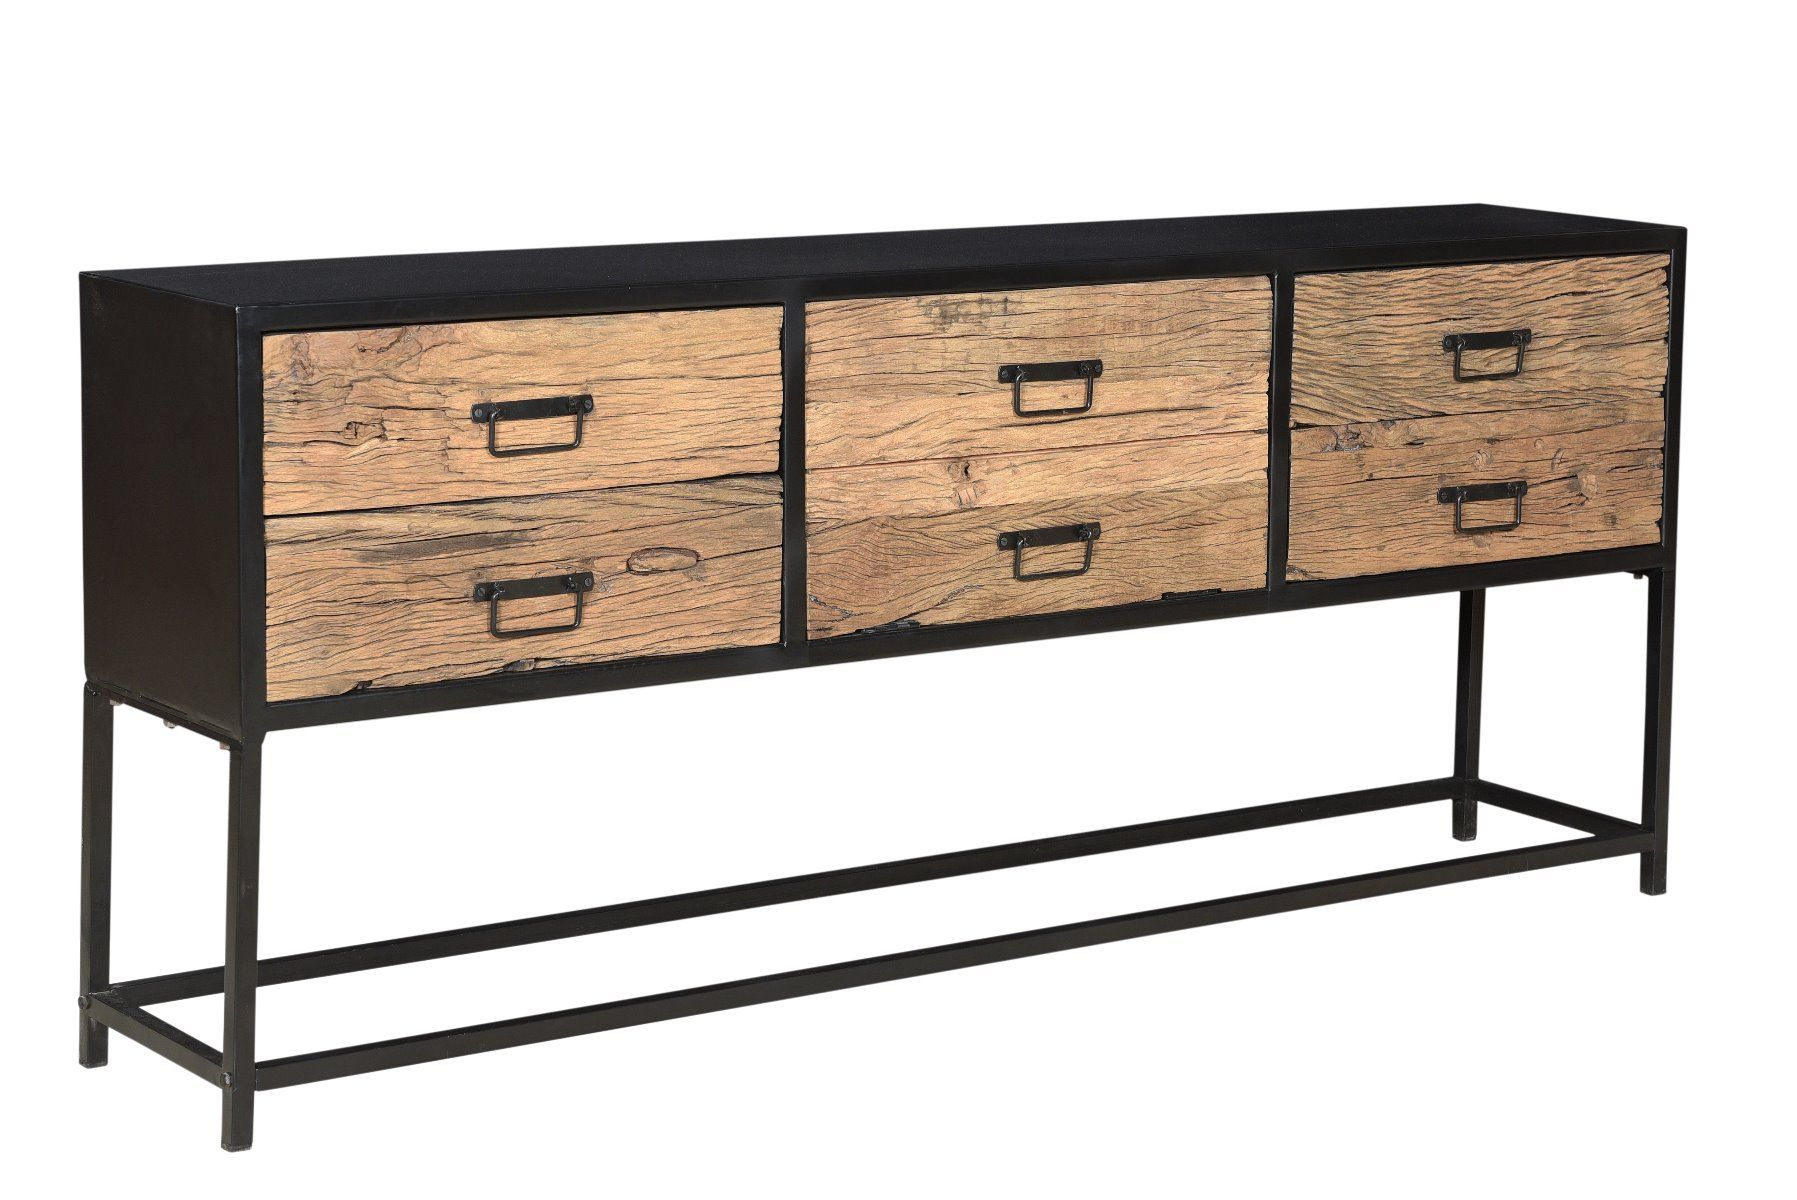 'Sleeper wood' Dressoir / tv-meubel - 200 x 35 x 83 cm